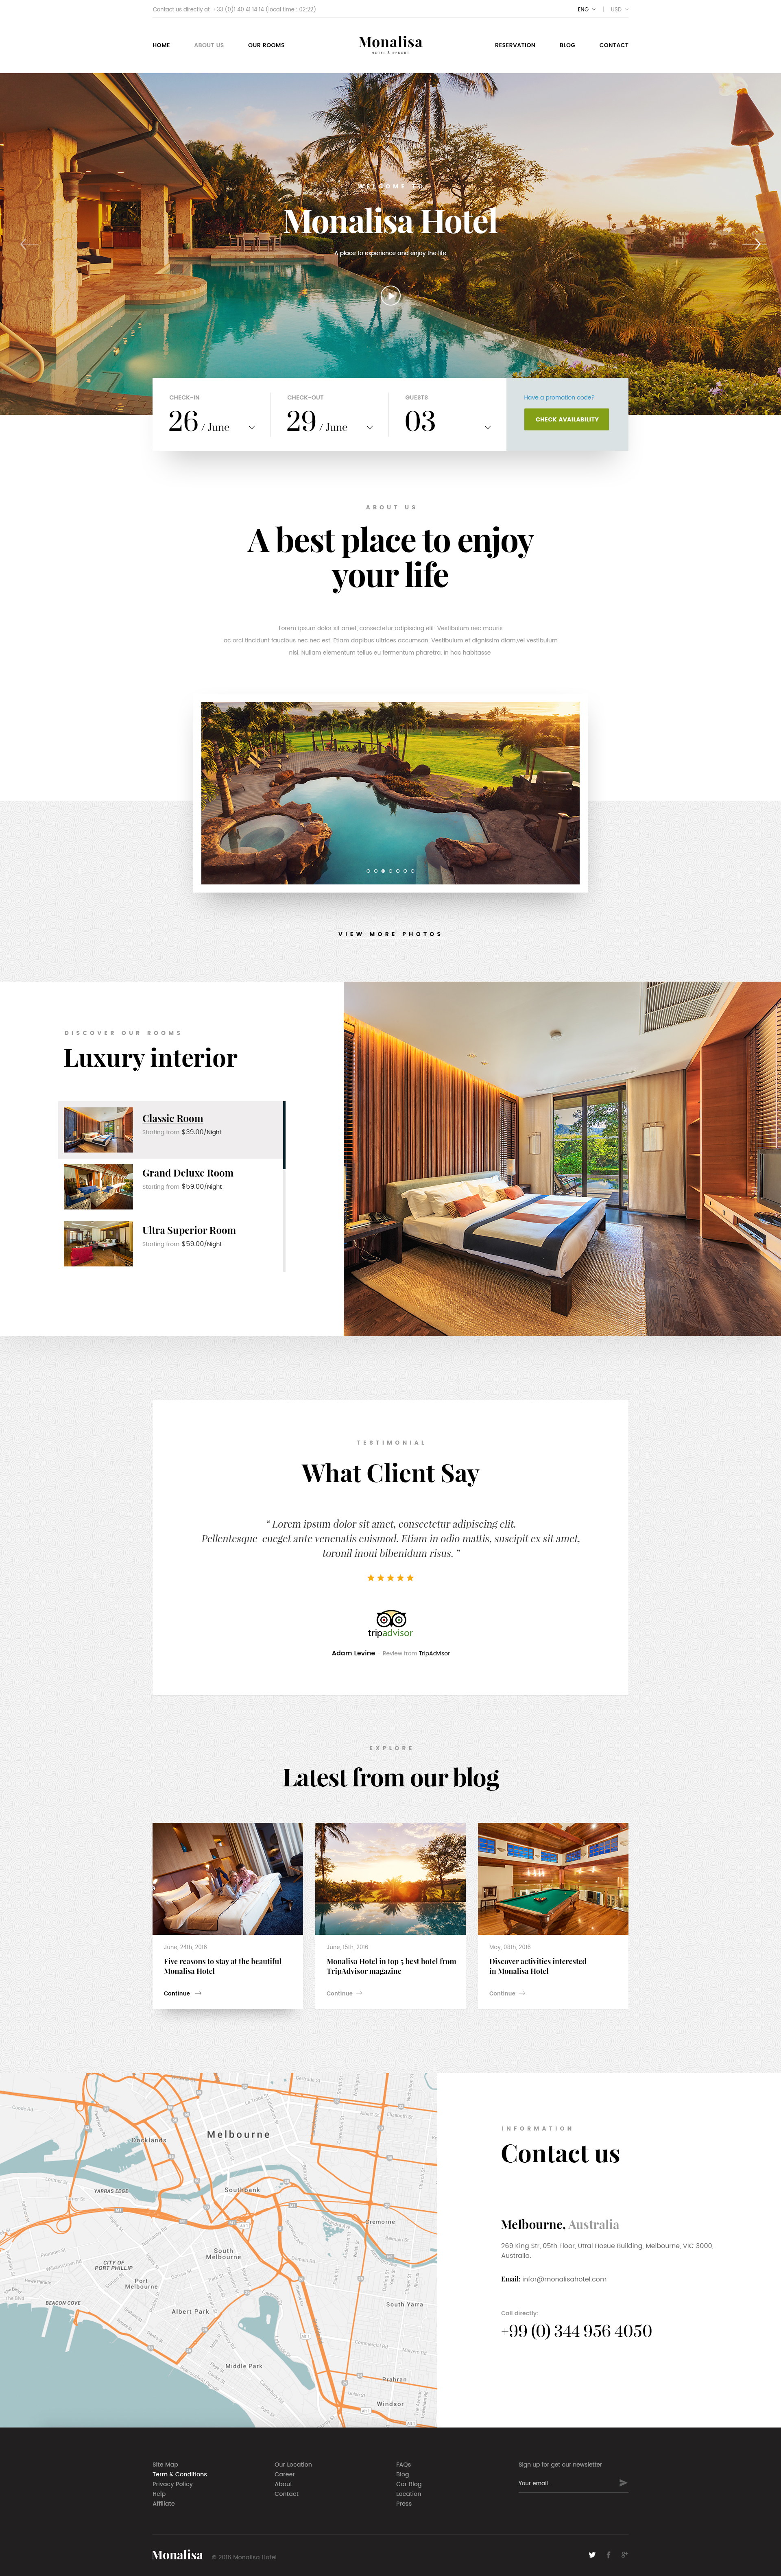 Monalisa premium booking hotel psd template psd templates for Hotel reservation design